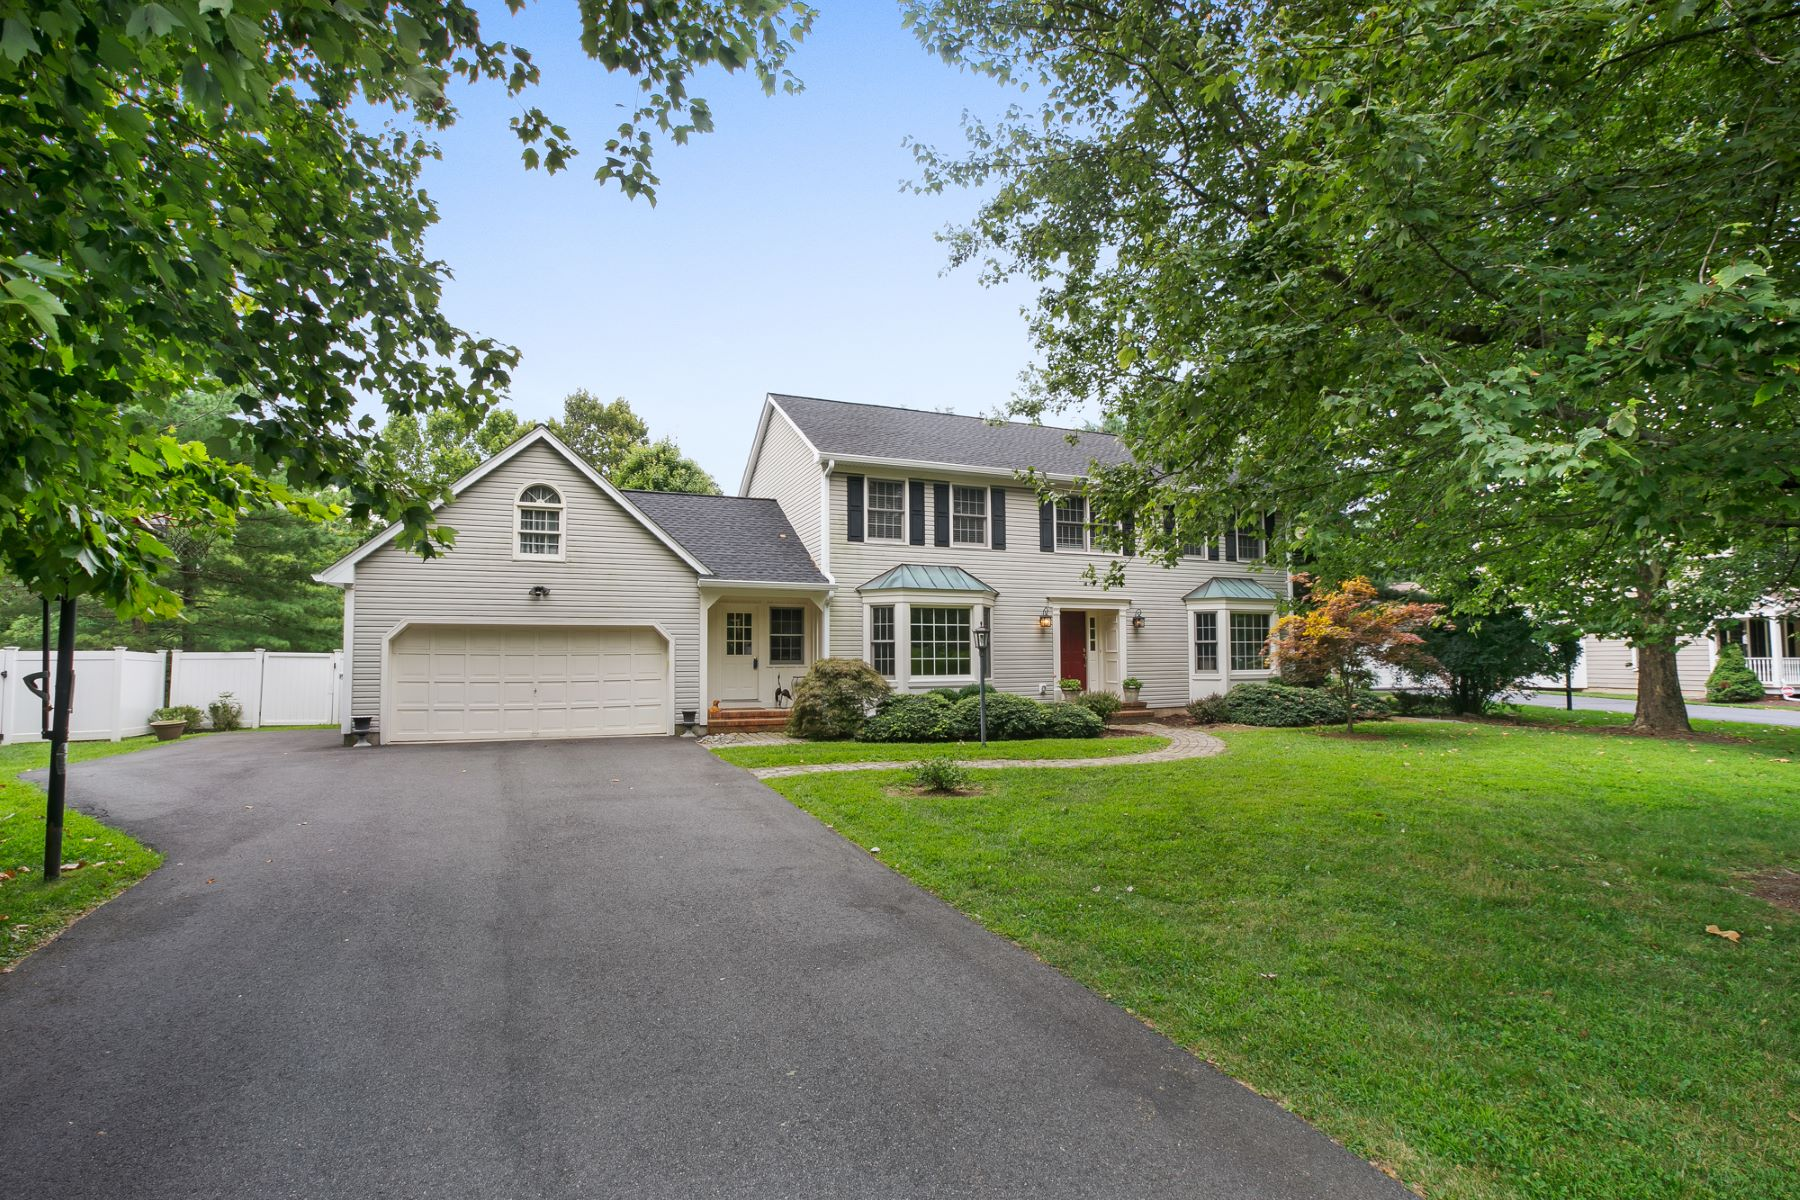 Single Family Homes for Sale at Classic Center Hall Colonial 29 Devonshire Lane Mendham, New Jersey 07945 United States